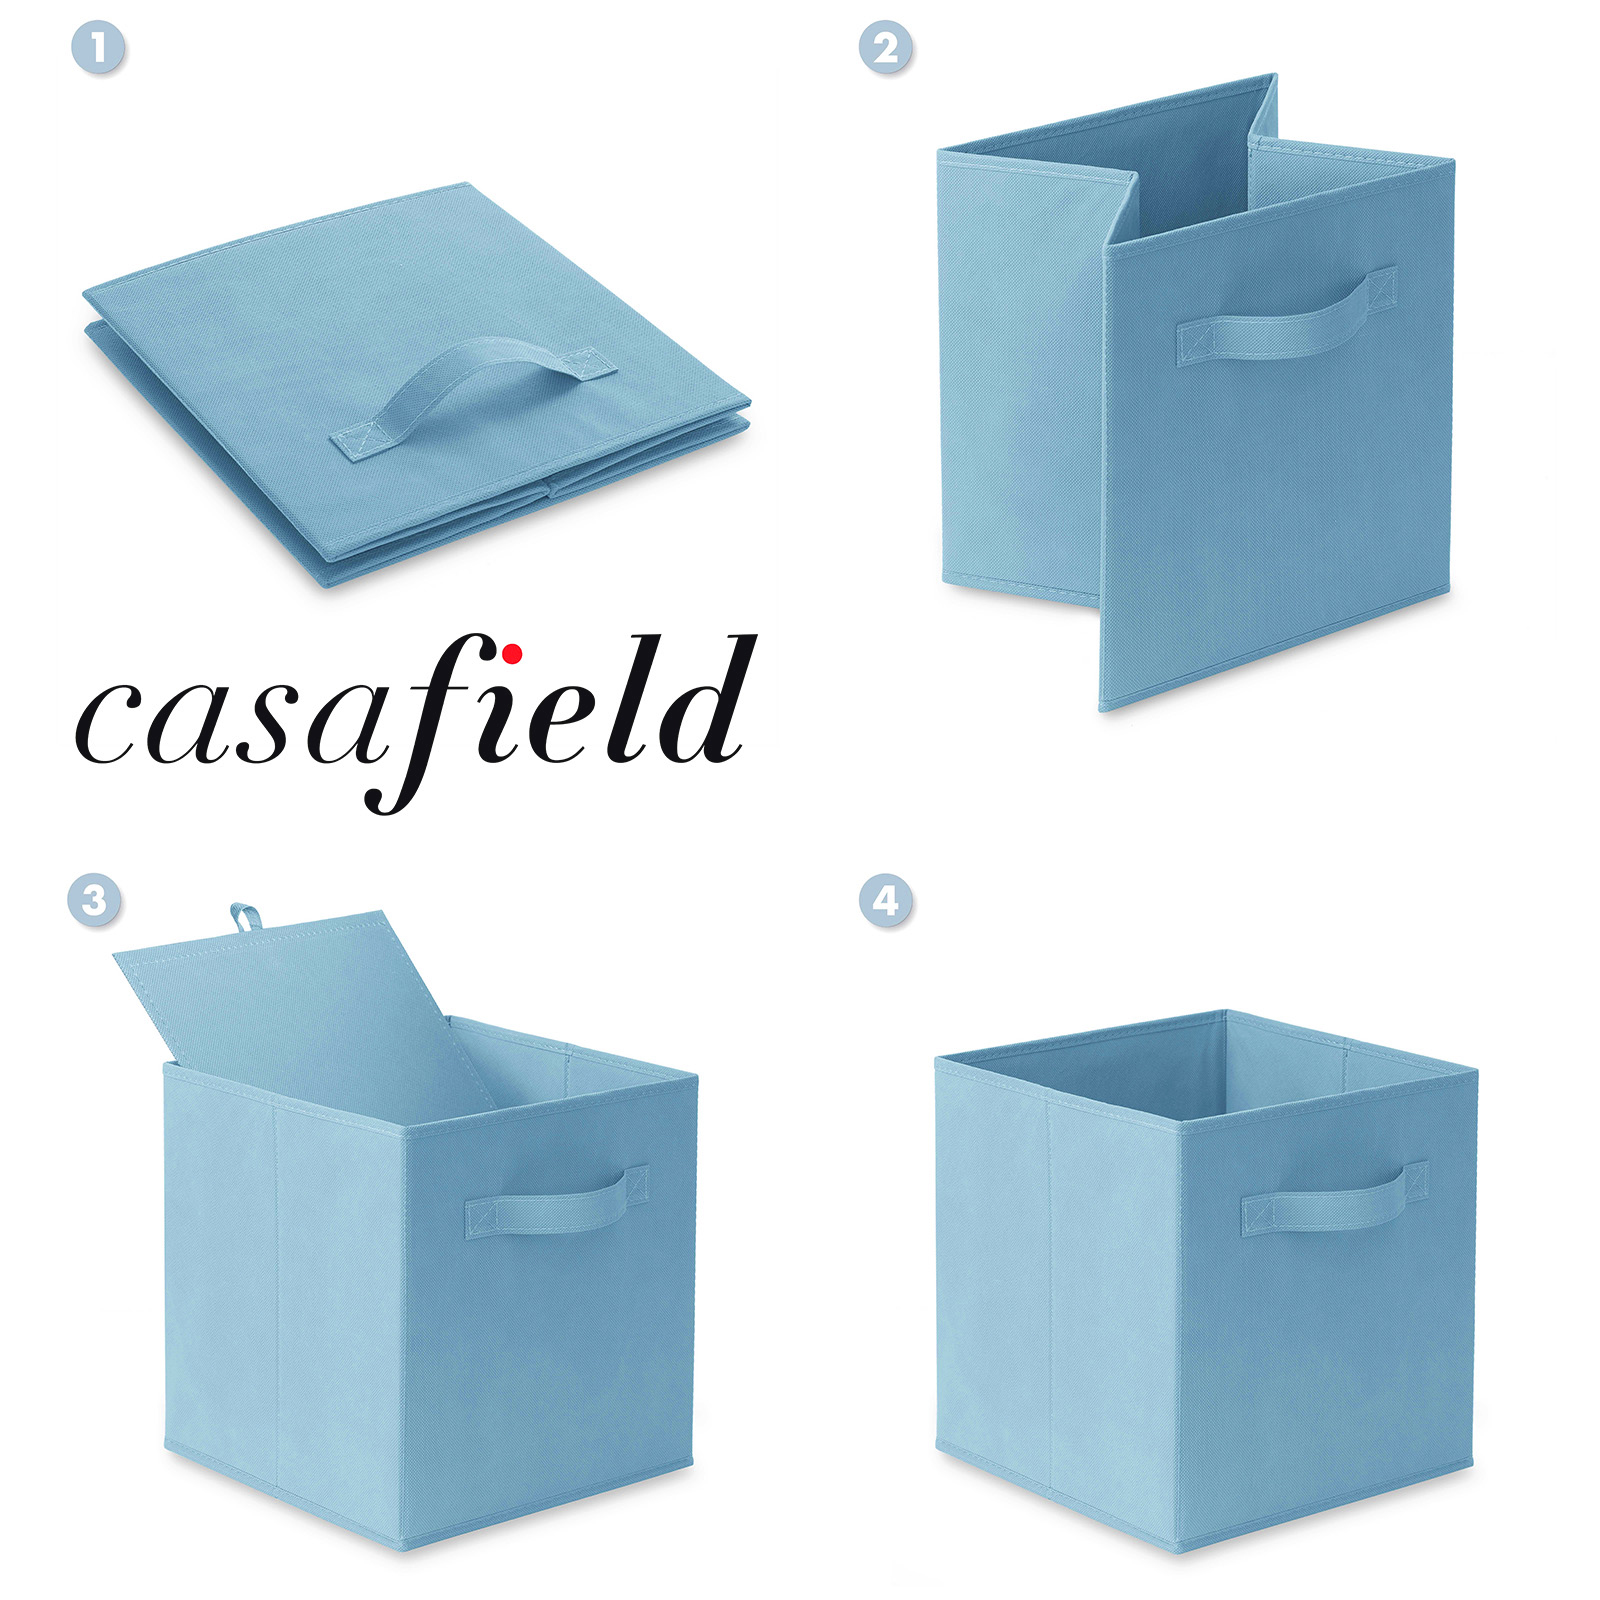 6-Collapsible-Foldable-Cloth-Fabric-Cubby-Cube-Storage-Bins-Baskets-for-Shelves thumbnail 7